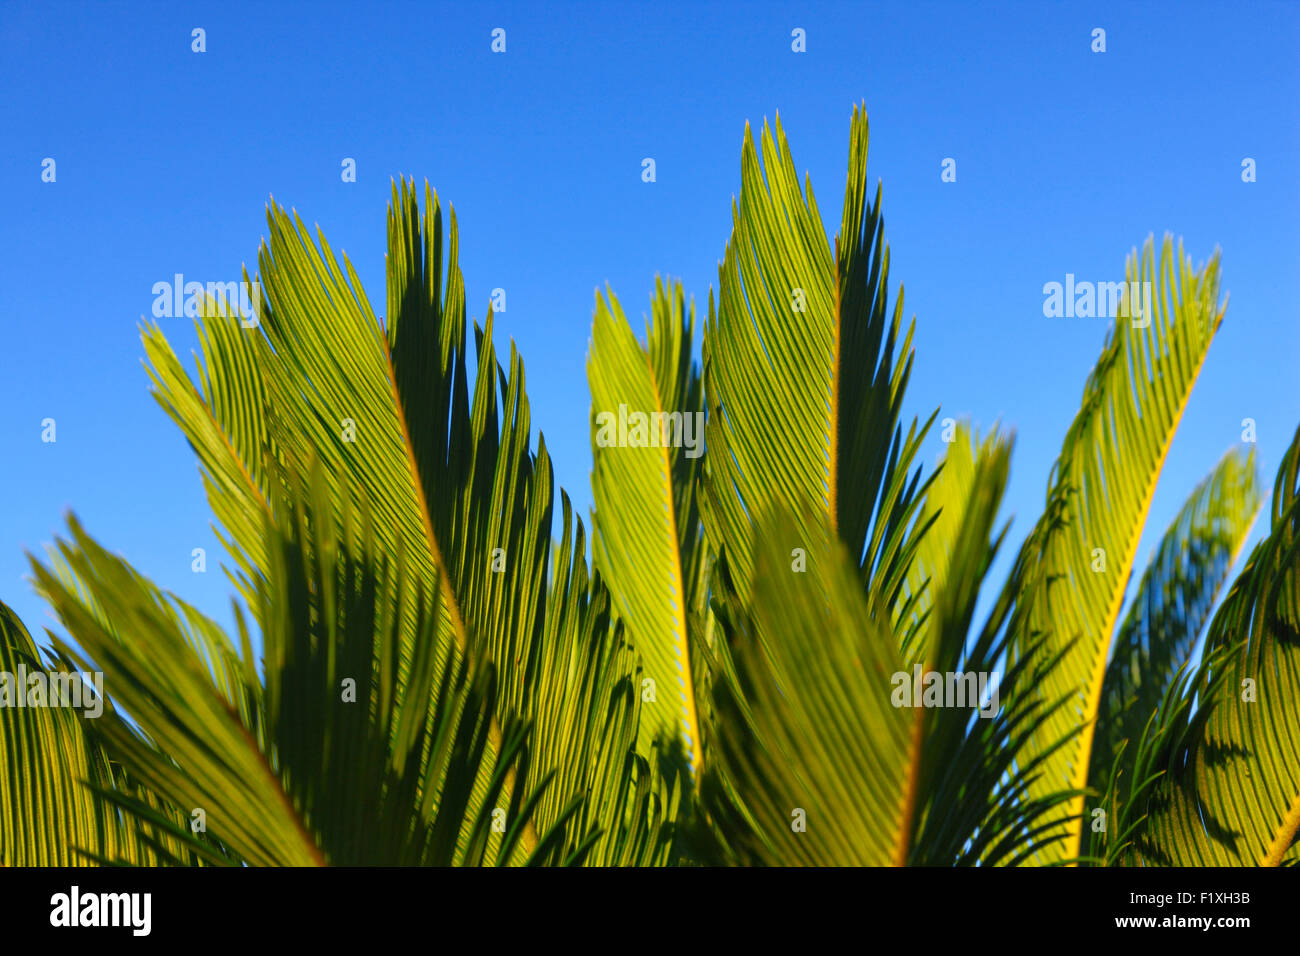 Palm leaves close up - Stock Image